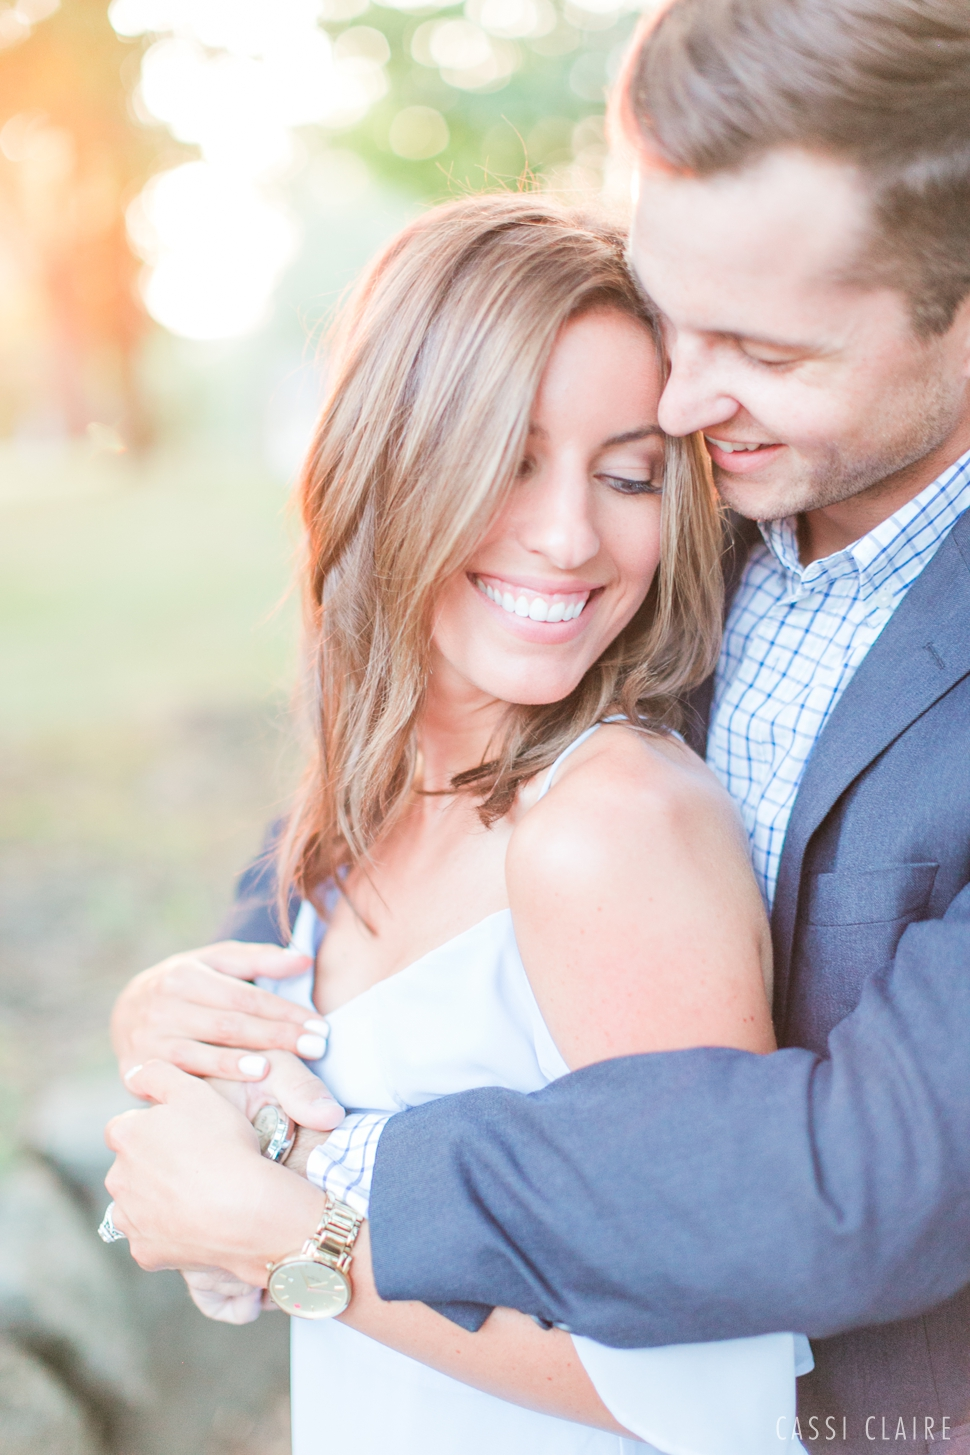 NJ-Engagement-Photos_Cassi-Claire_52.jpg